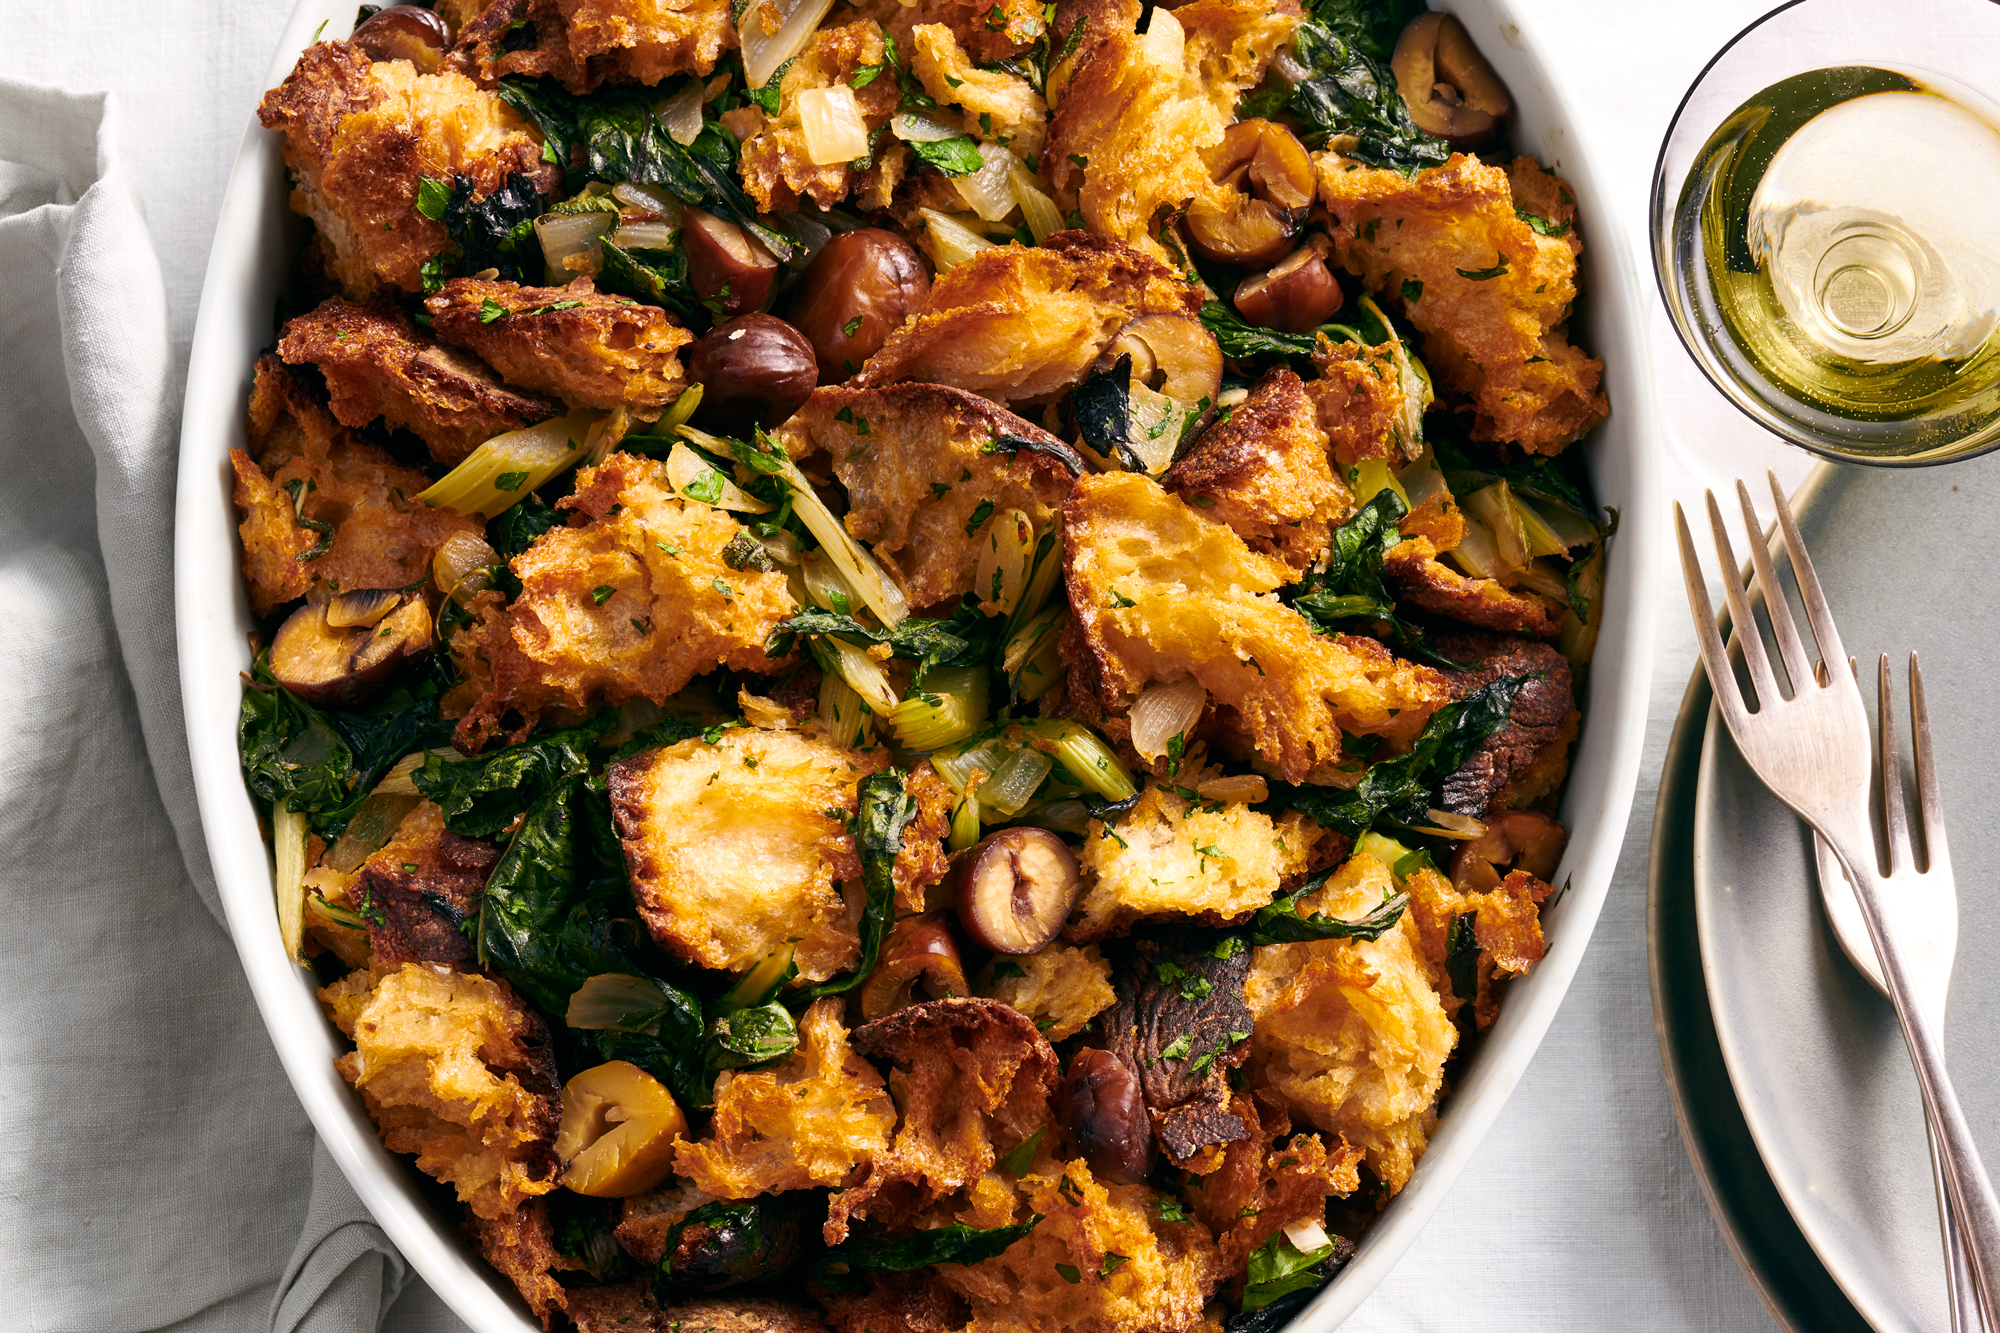 Bread stuffing with Swiss chard and chestnuts